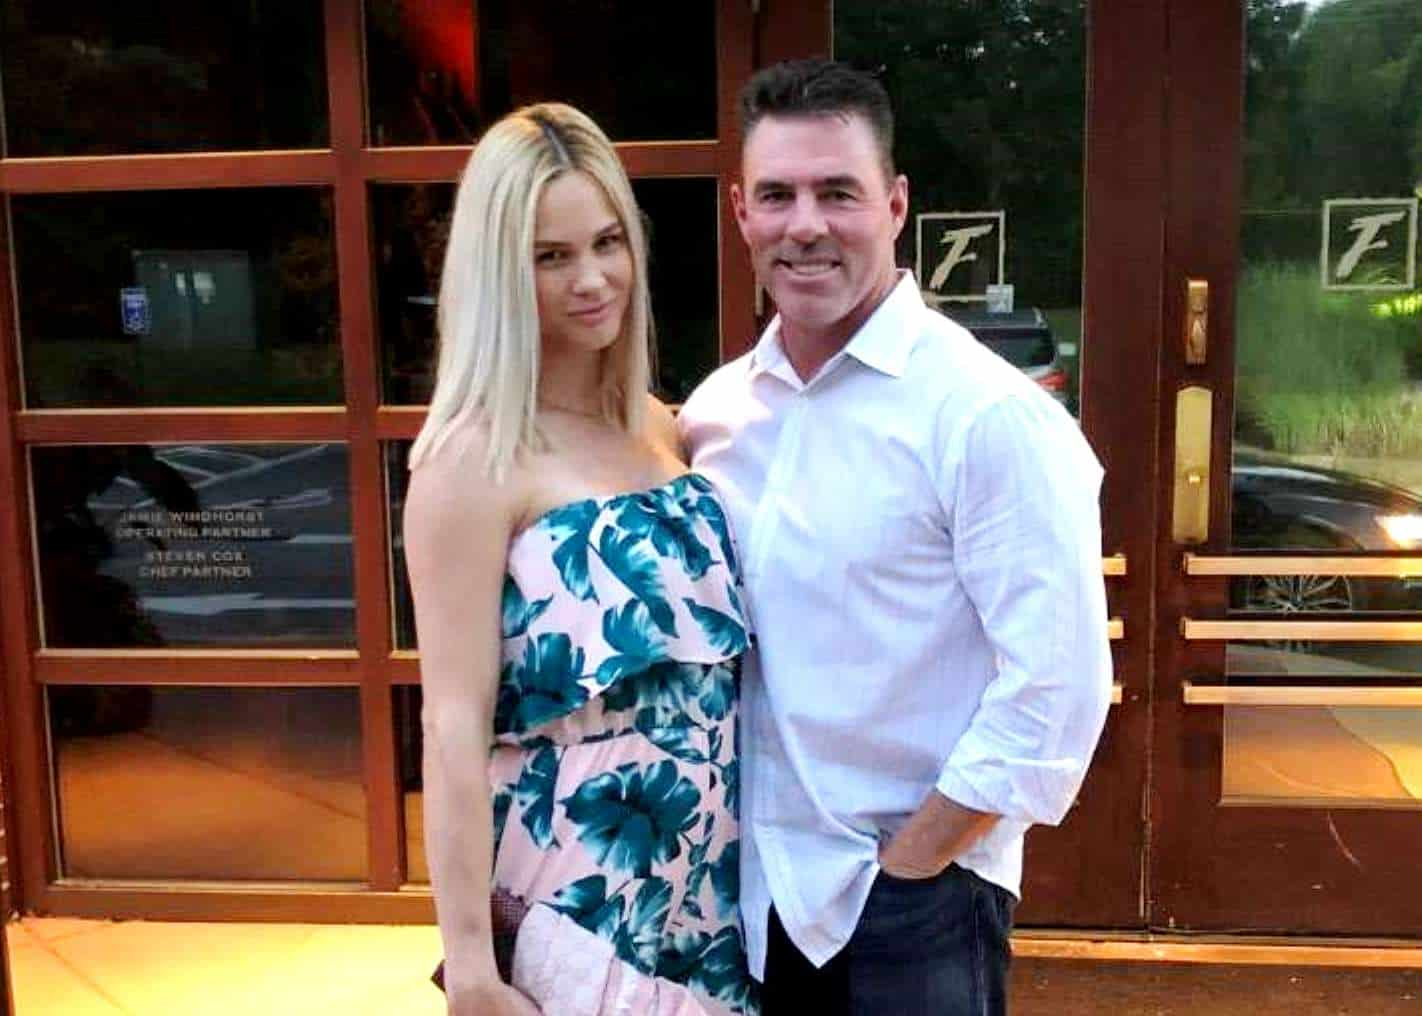 PHOTOS: RHOC's Meghan King Edmonds Reunites With Estranged Husband Jim